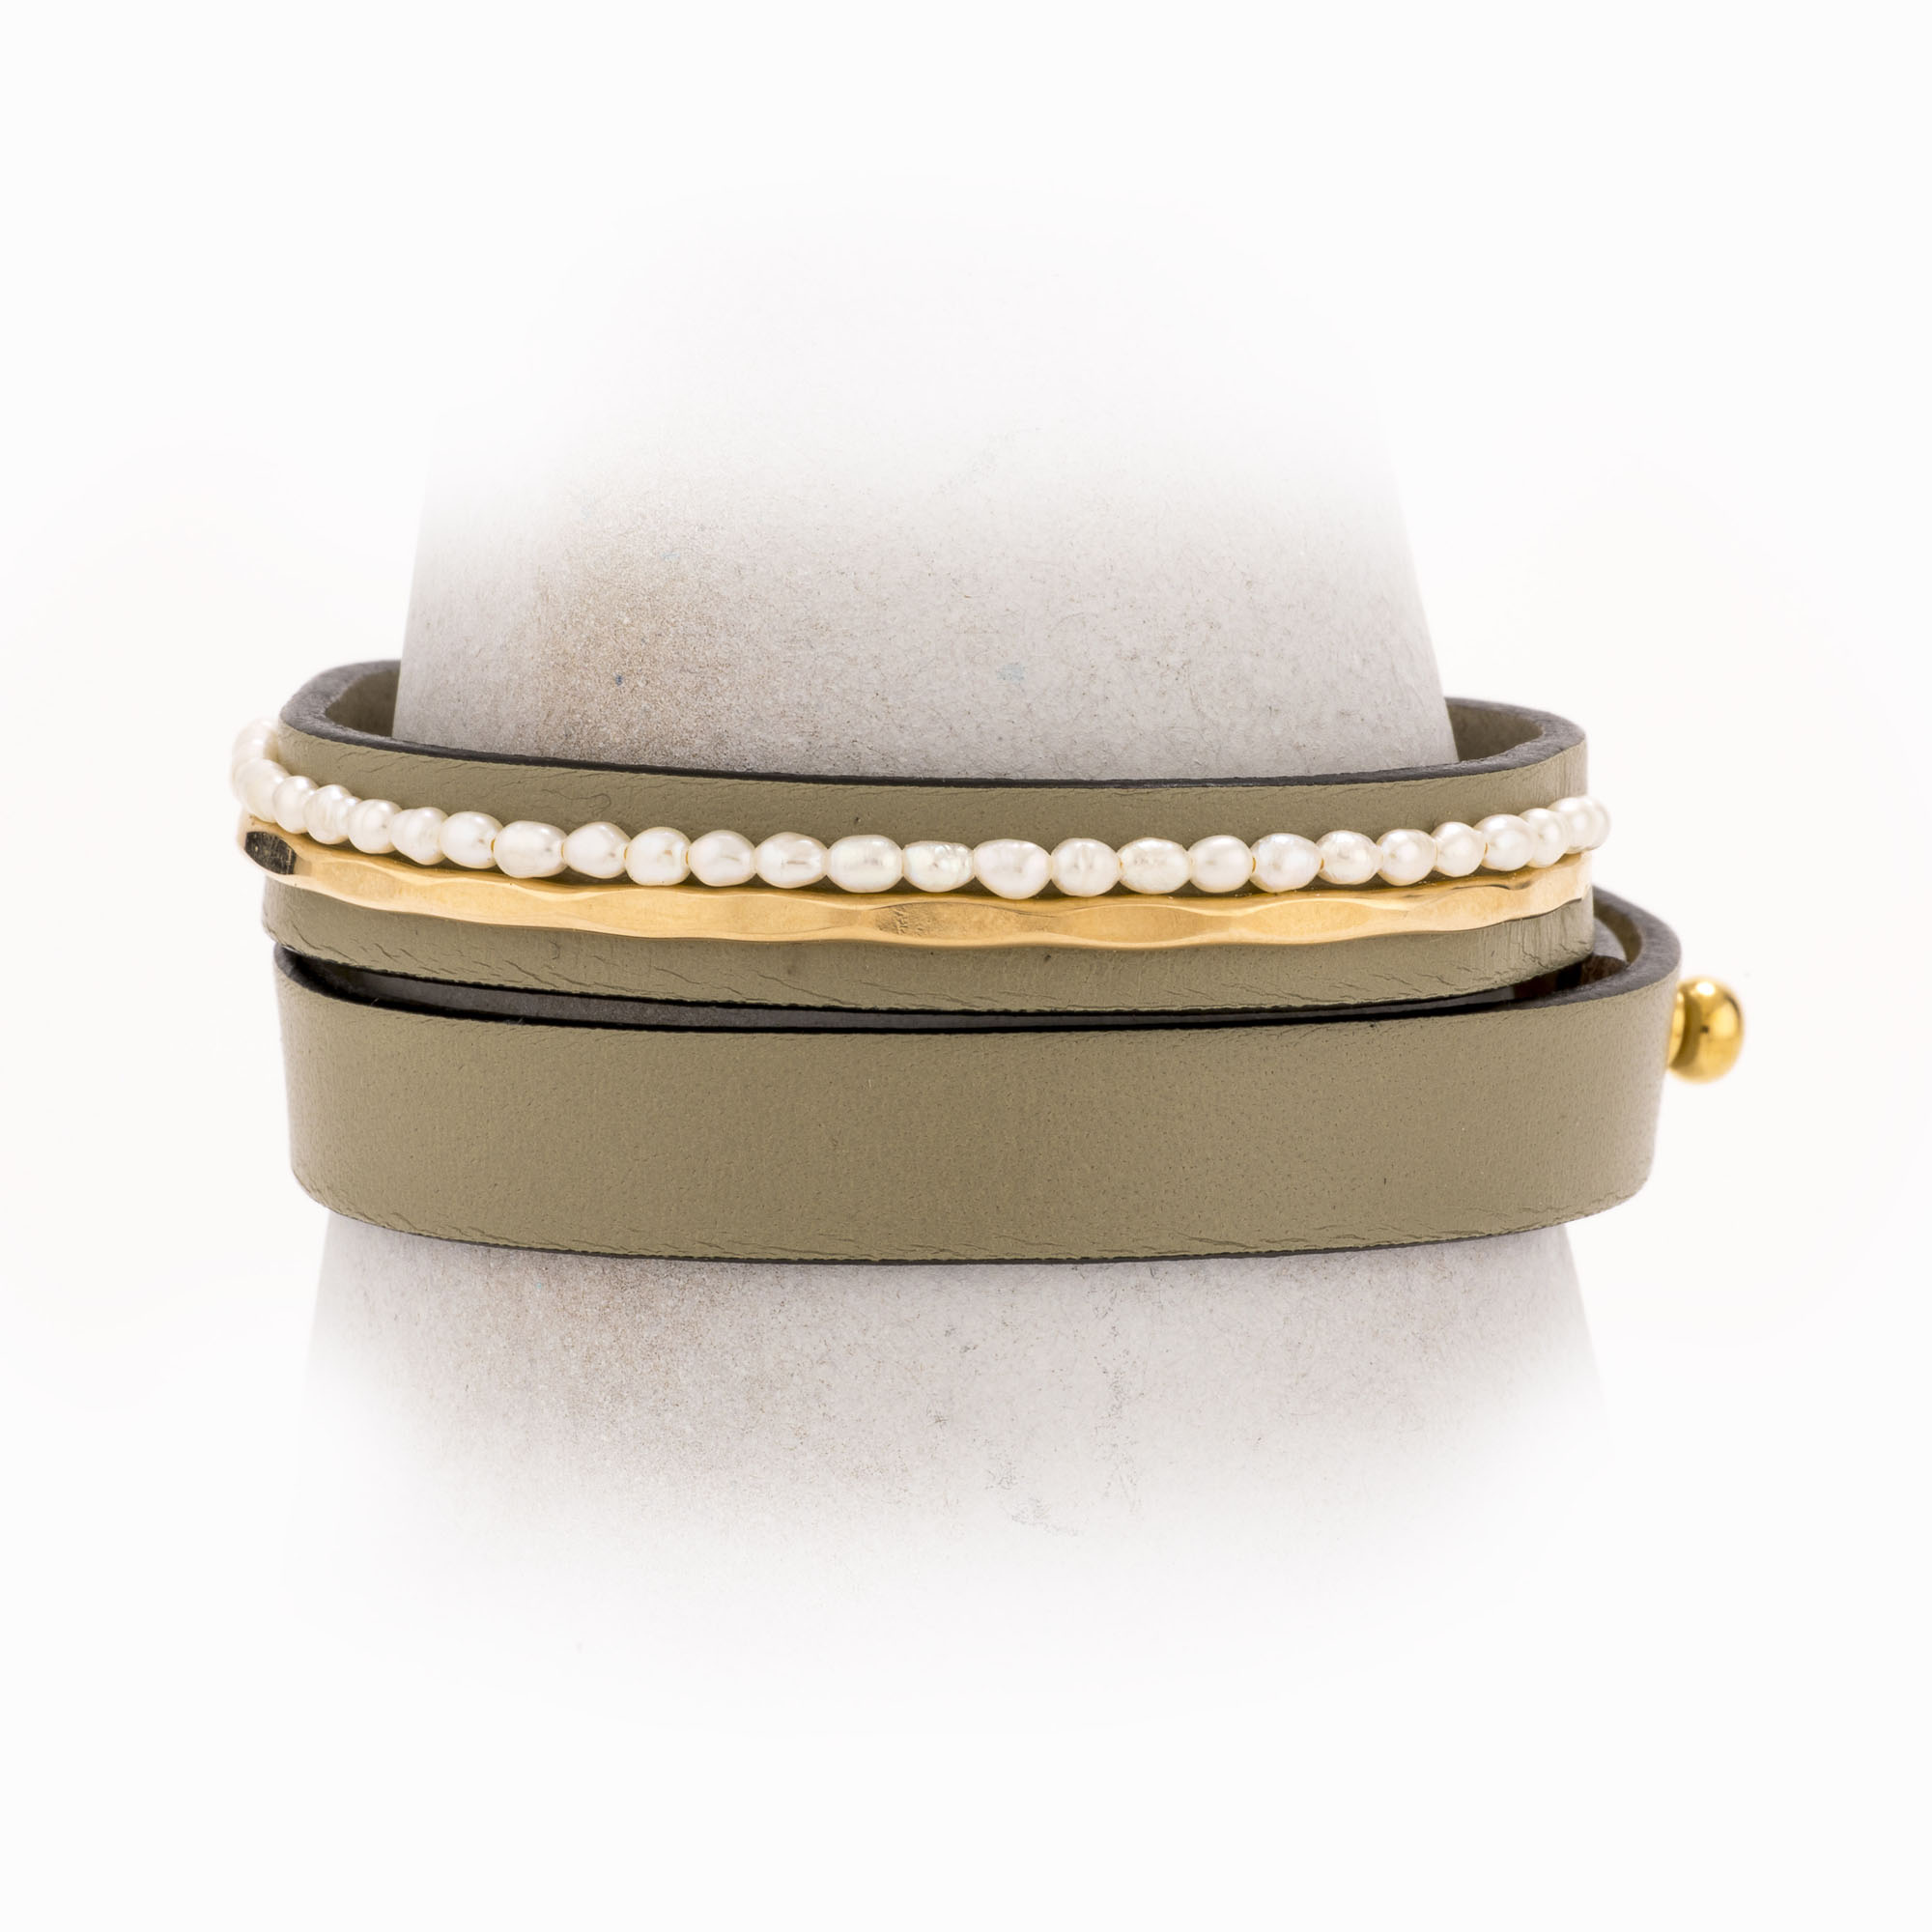 A taupe leather wrap bracelet with 14k gold-filled wire and mini pearls.